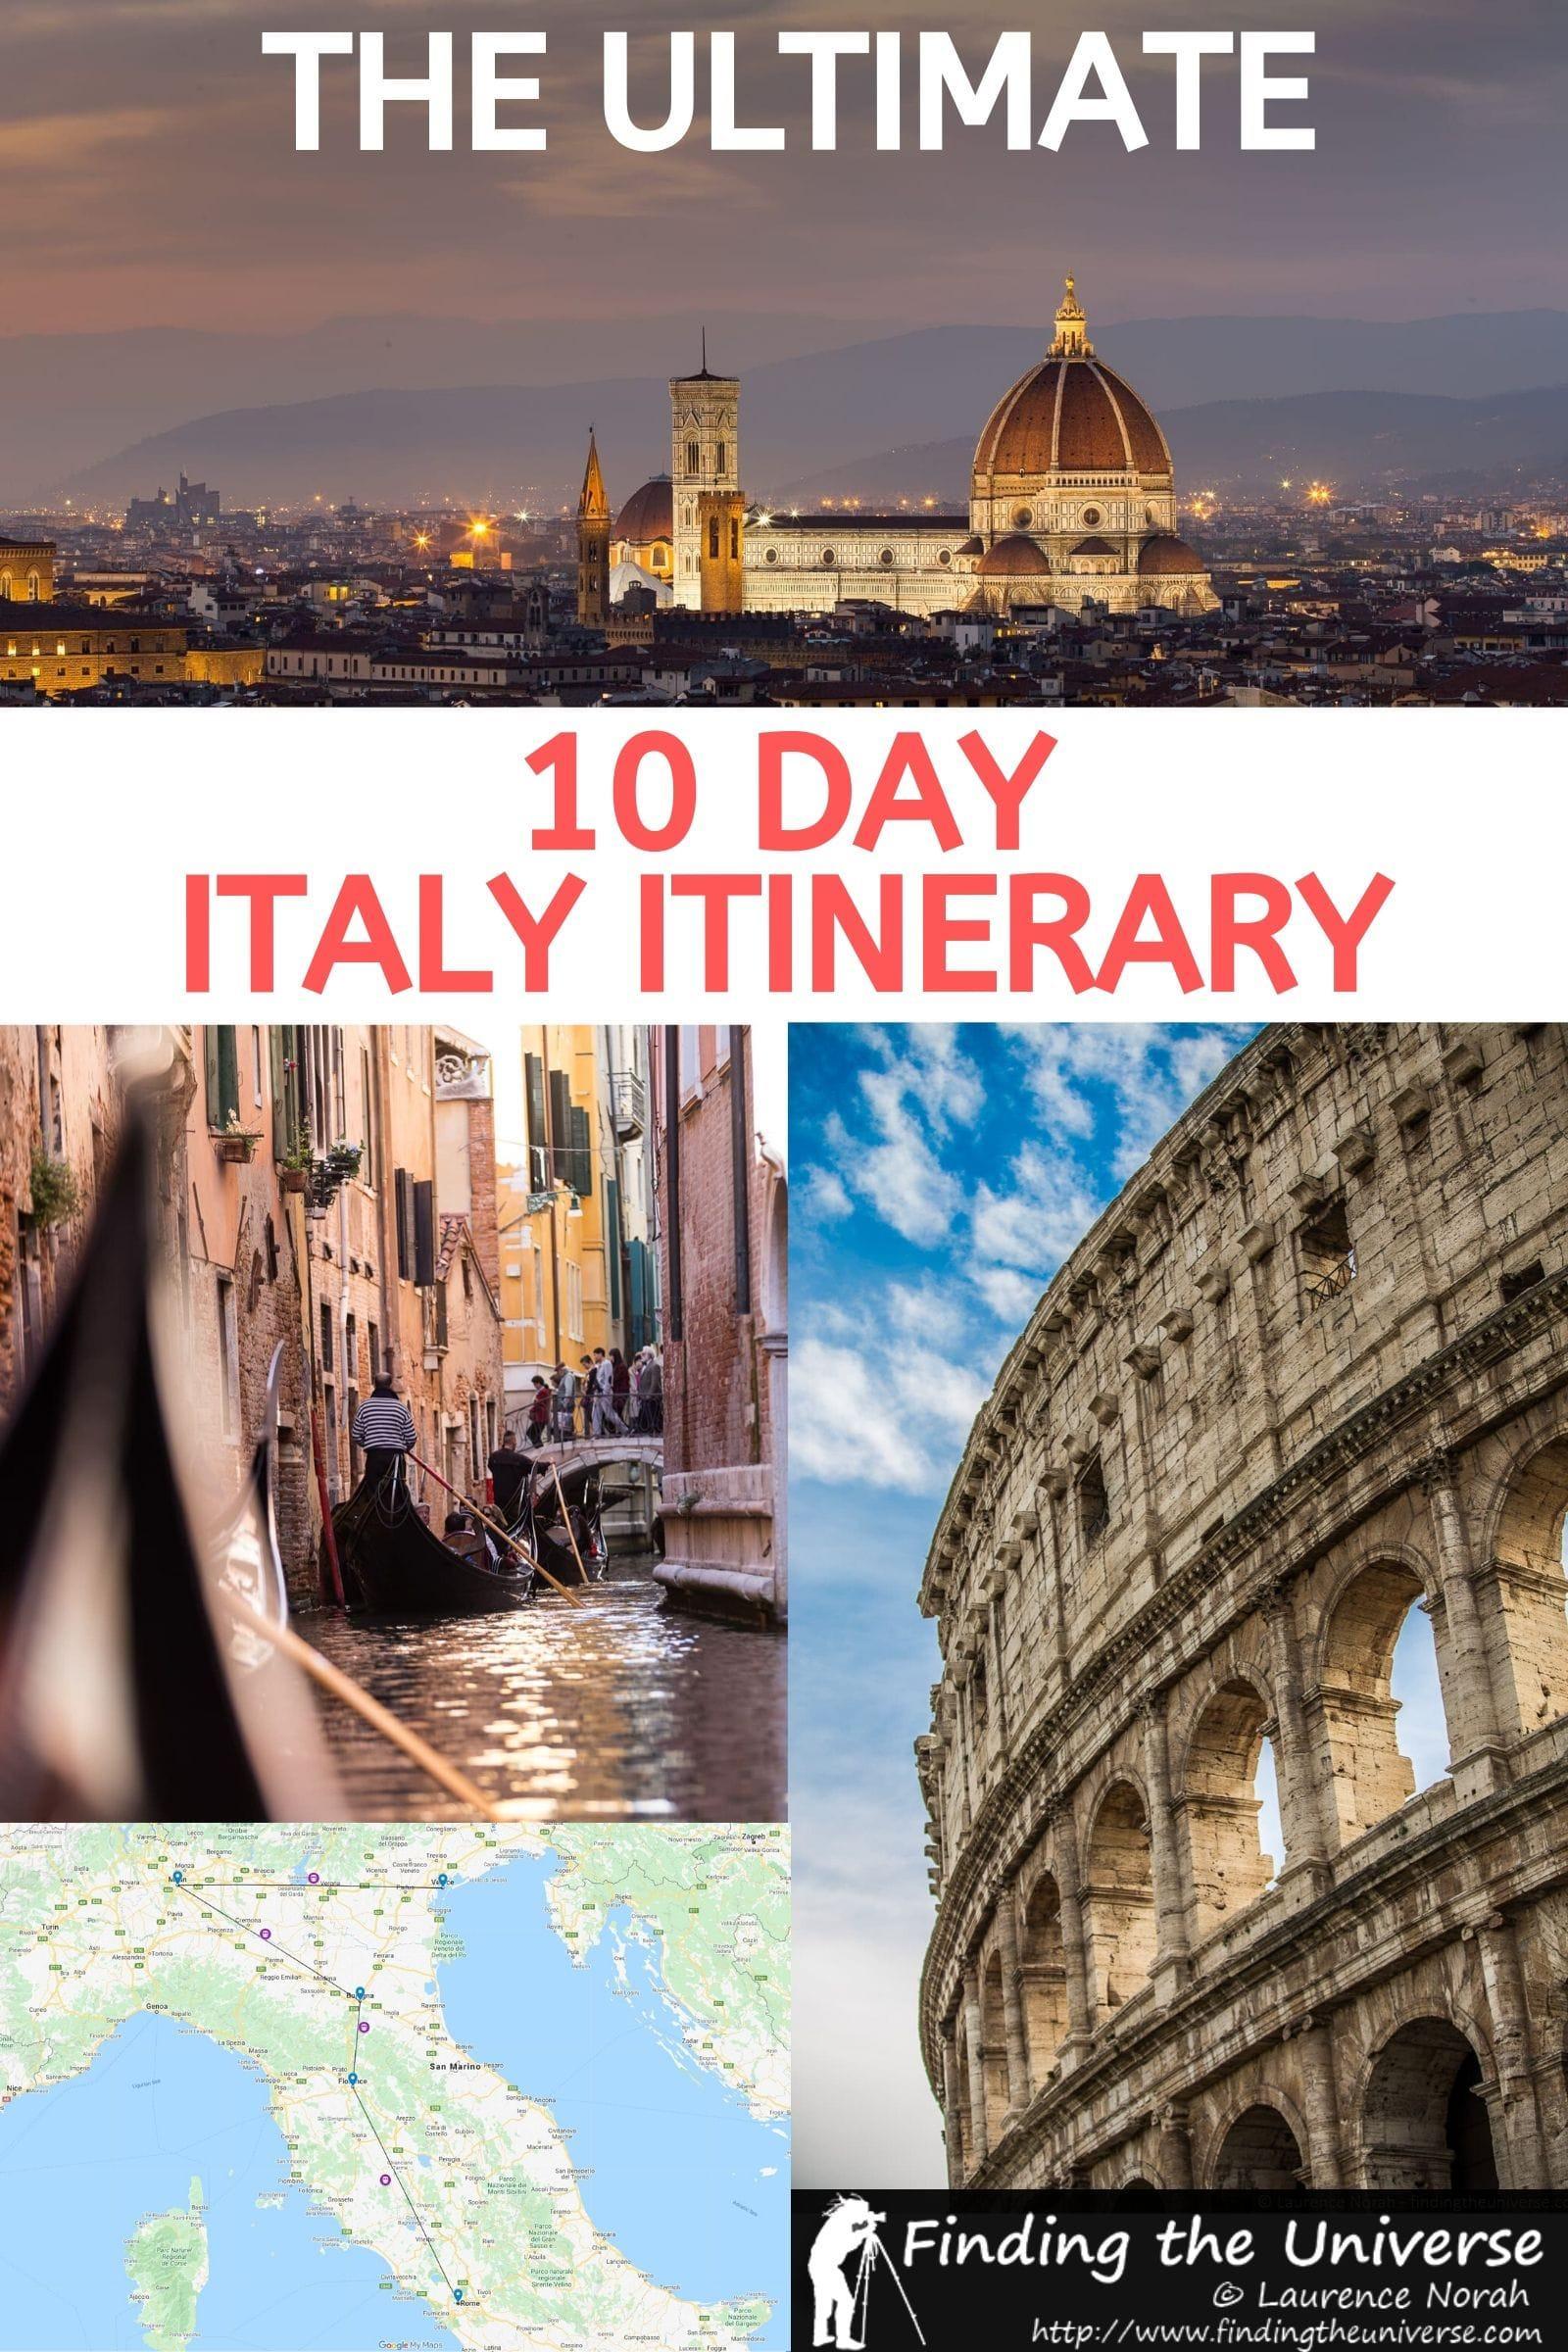 A detailed 10 day Italy Itinerary, with day by day instructions for every destination, information on getting around Italy, accommodation tips + lots more!